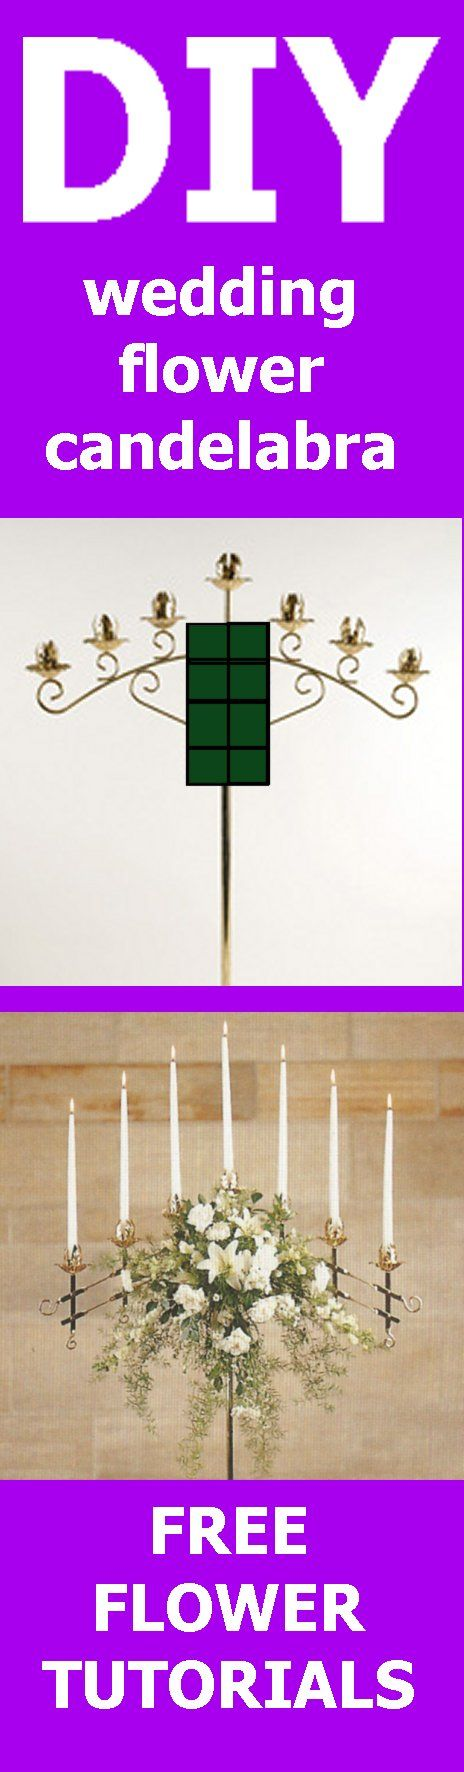 Traditional Wedding Candelabra - Easy Wedding Flower Tutorials  Learn how to make church decorations, bridal bouquets, wedding corsages, groom boutonnieres and reception table centerpieces.